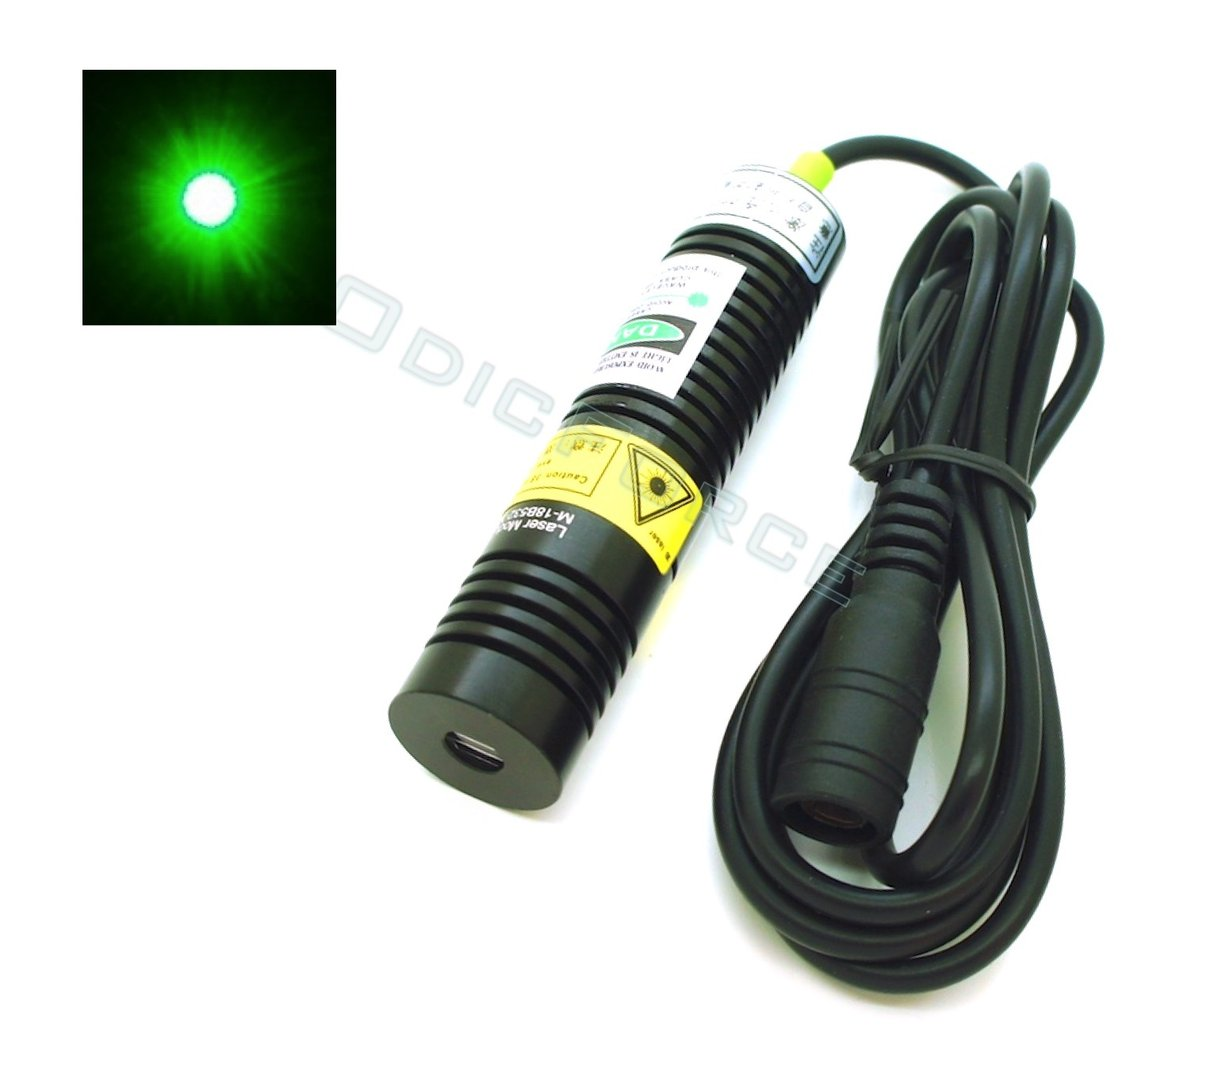 30mW Green (532nm) Laser Dot Module  (18mm) 5V